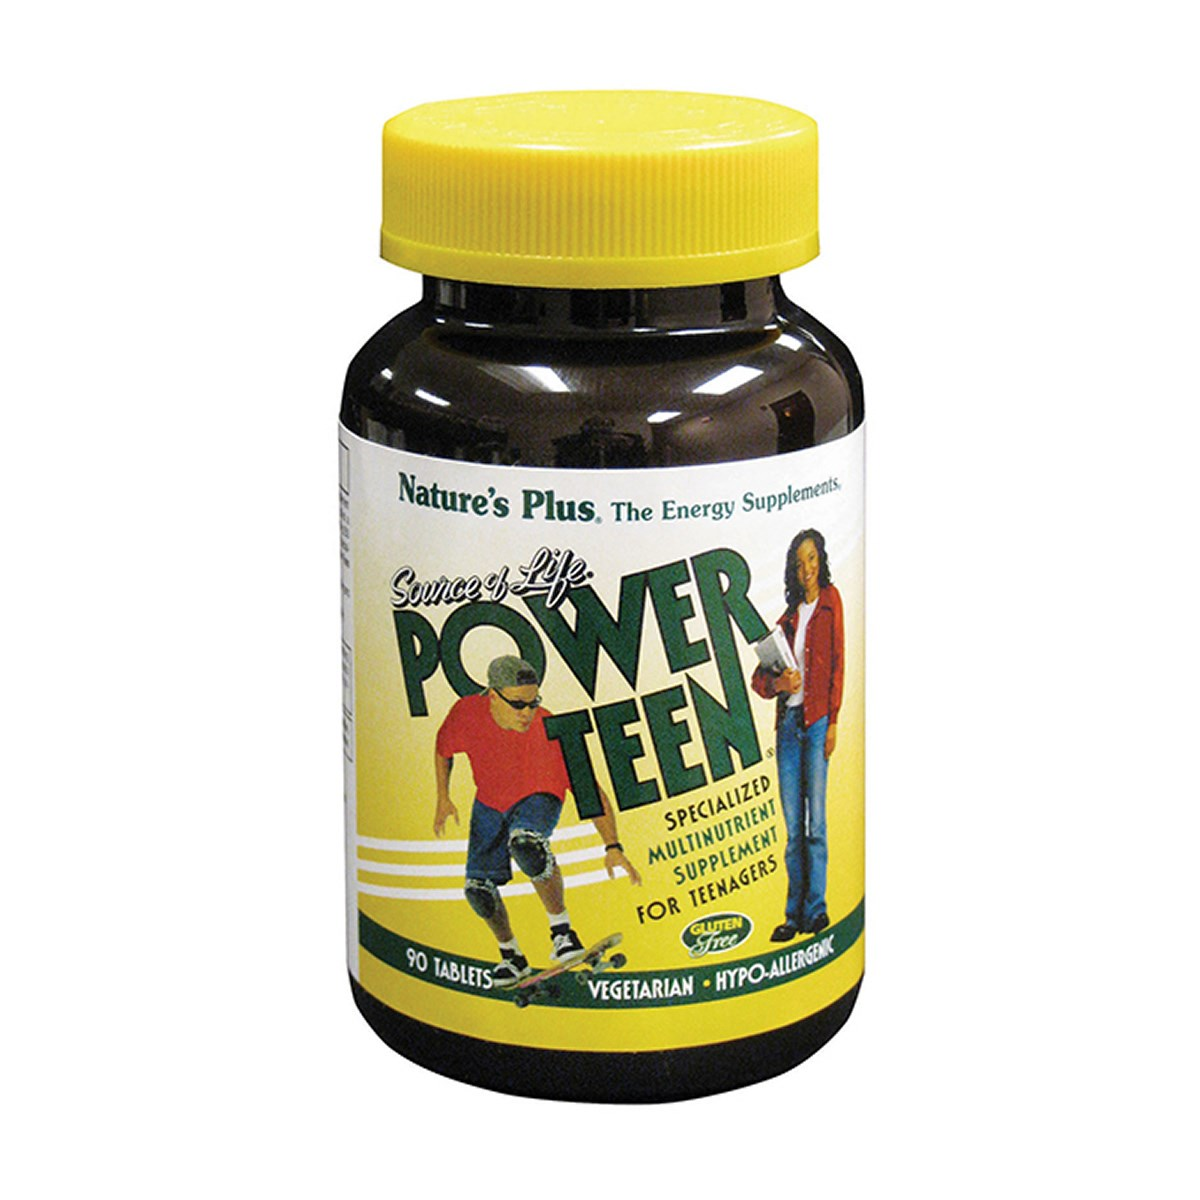 Natures Plus Power Teen - Multivitamin With Whole Foods Tablets